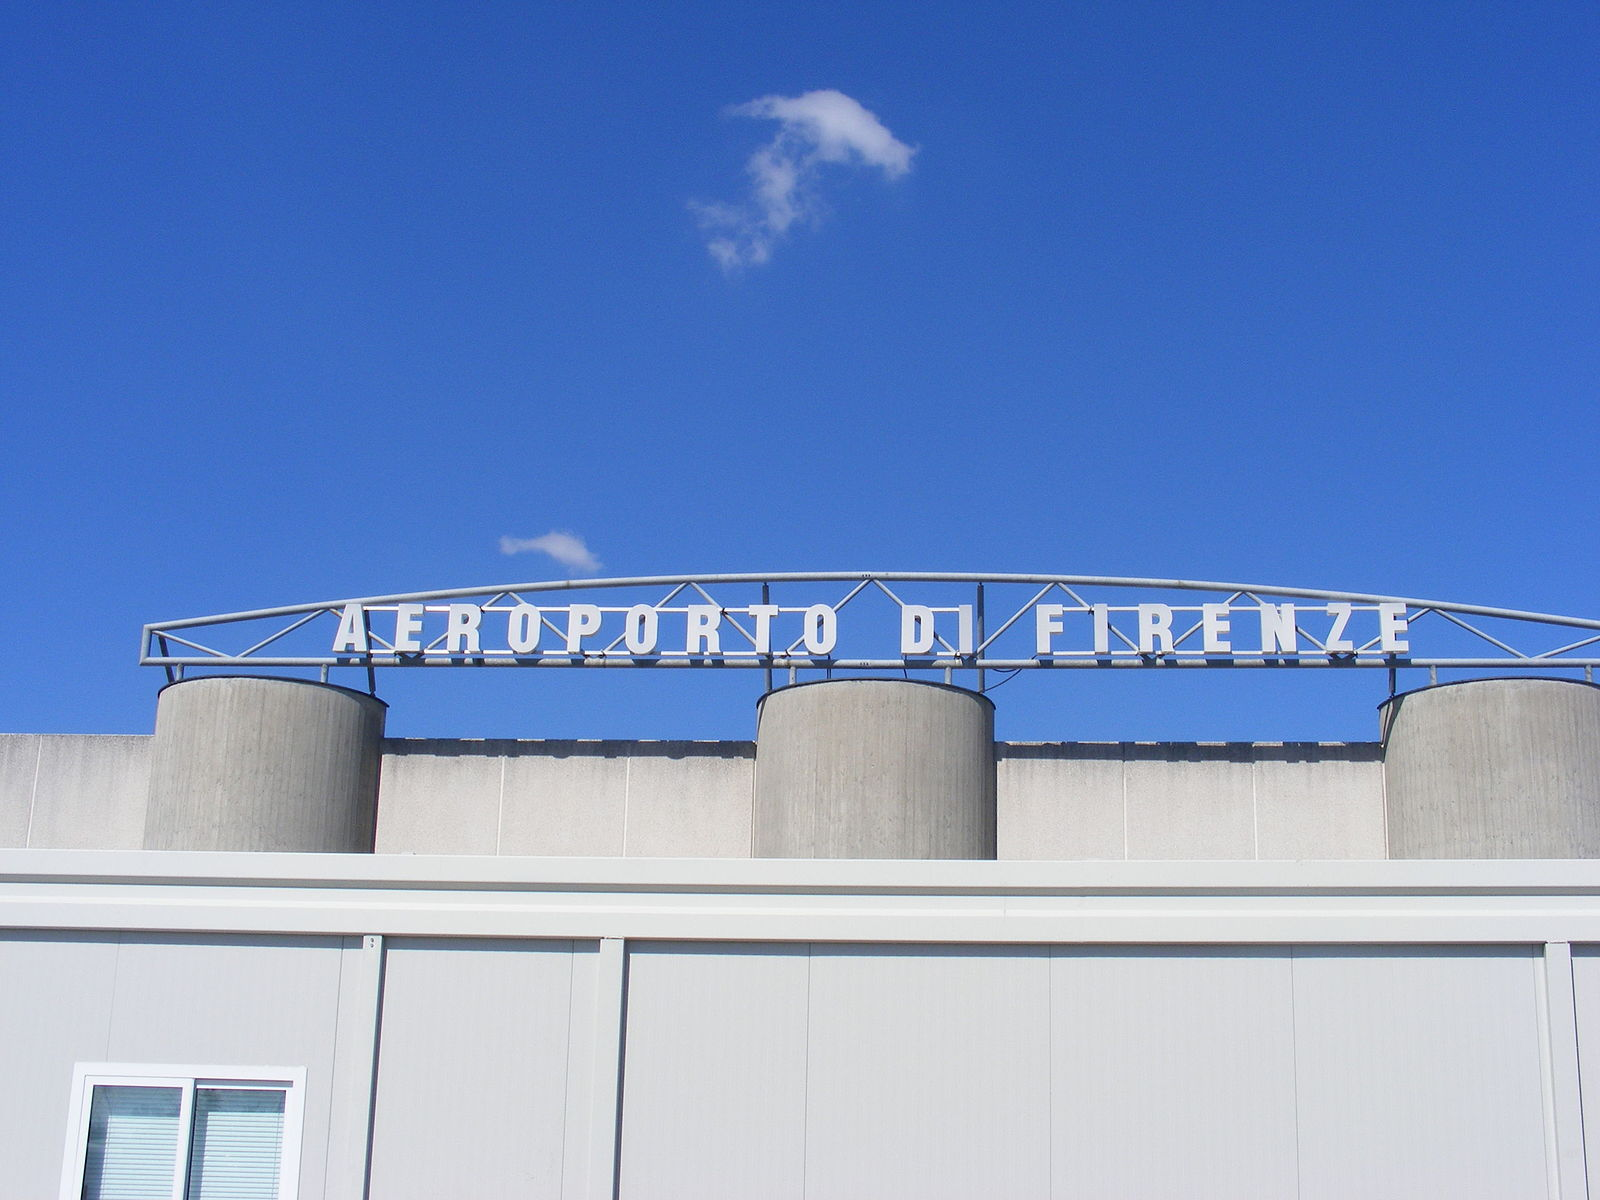 Florence Airport, Peretola serves Florence, in Italy.